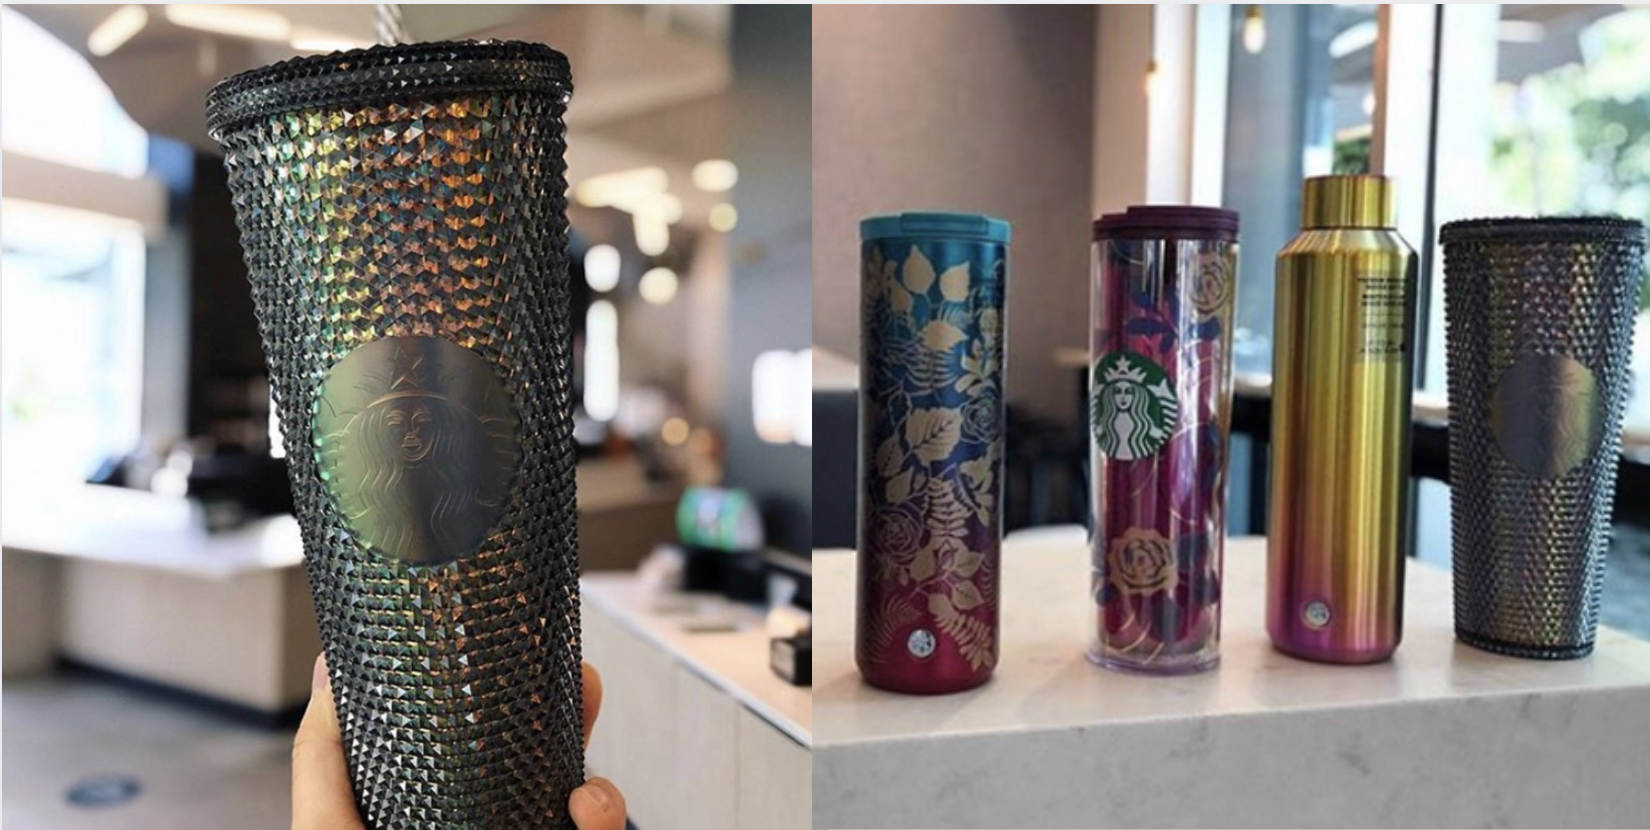 Halloween 2020 Release Date Starbucks' Fall Line Of Drinkware Is Coming This Month